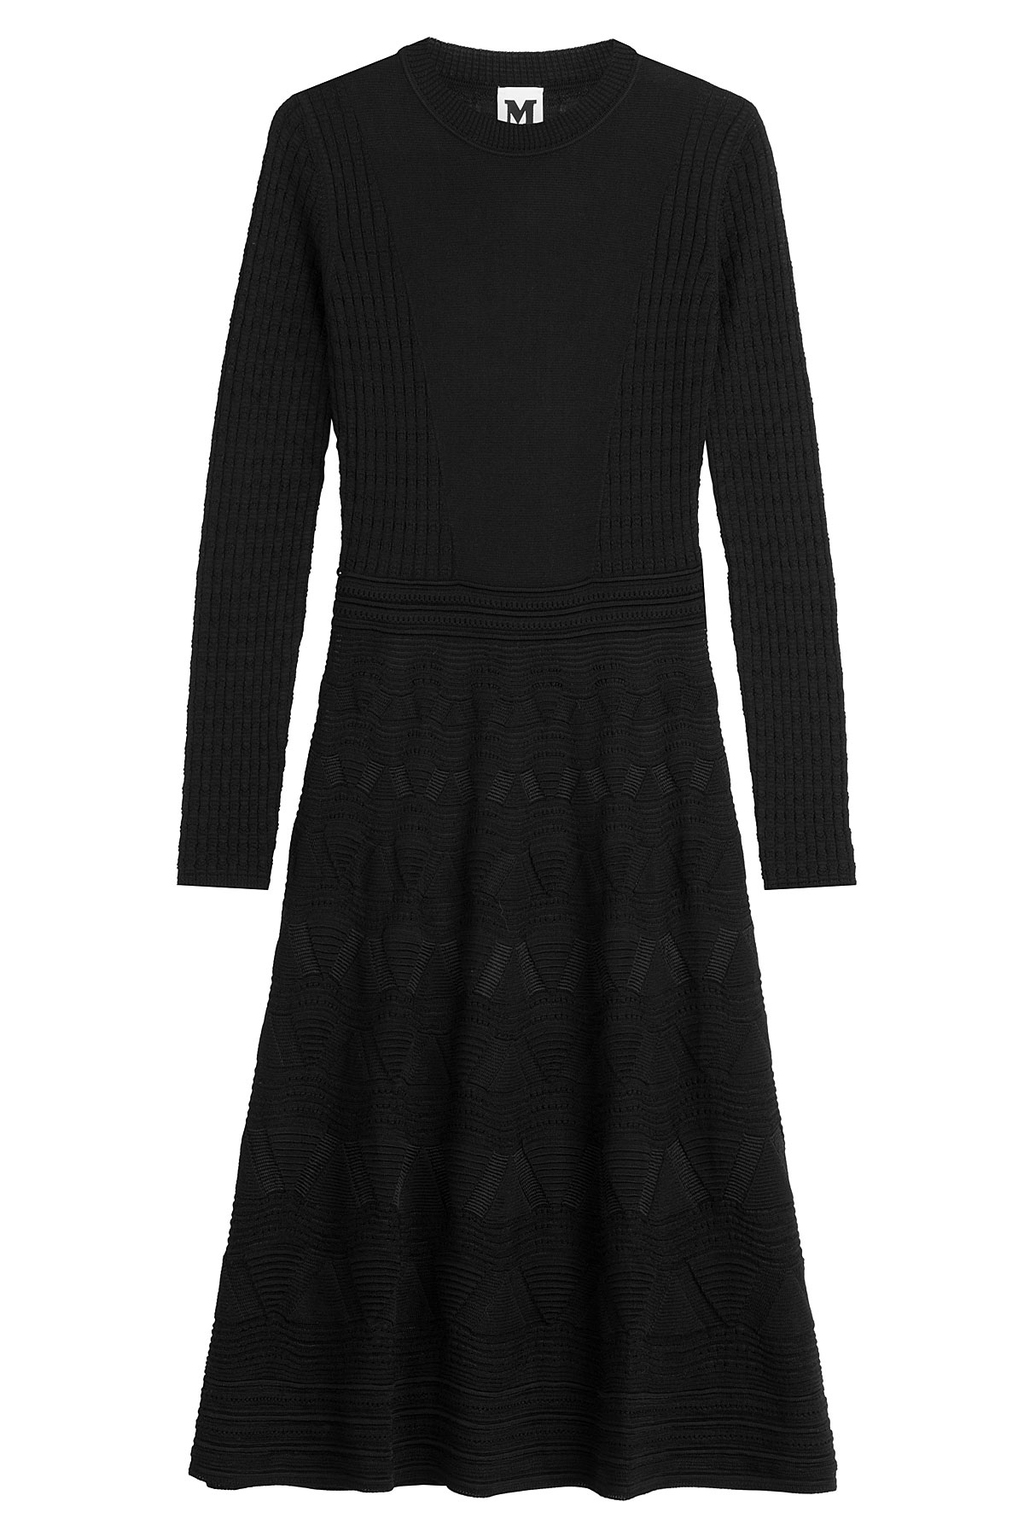 Patterned Knit Dress Black - style: tunic; pattern: plain; predominant colour: pale blue; occasions: casual, creative work; length: on the knee; fit: soft a-line; fibres: wool - 100%; neckline: crew; sleeve length: long sleeve; sleeve style: standard; pattern type: fabric; texture group: jersey - stretchy/drapey; season: s/s 2016